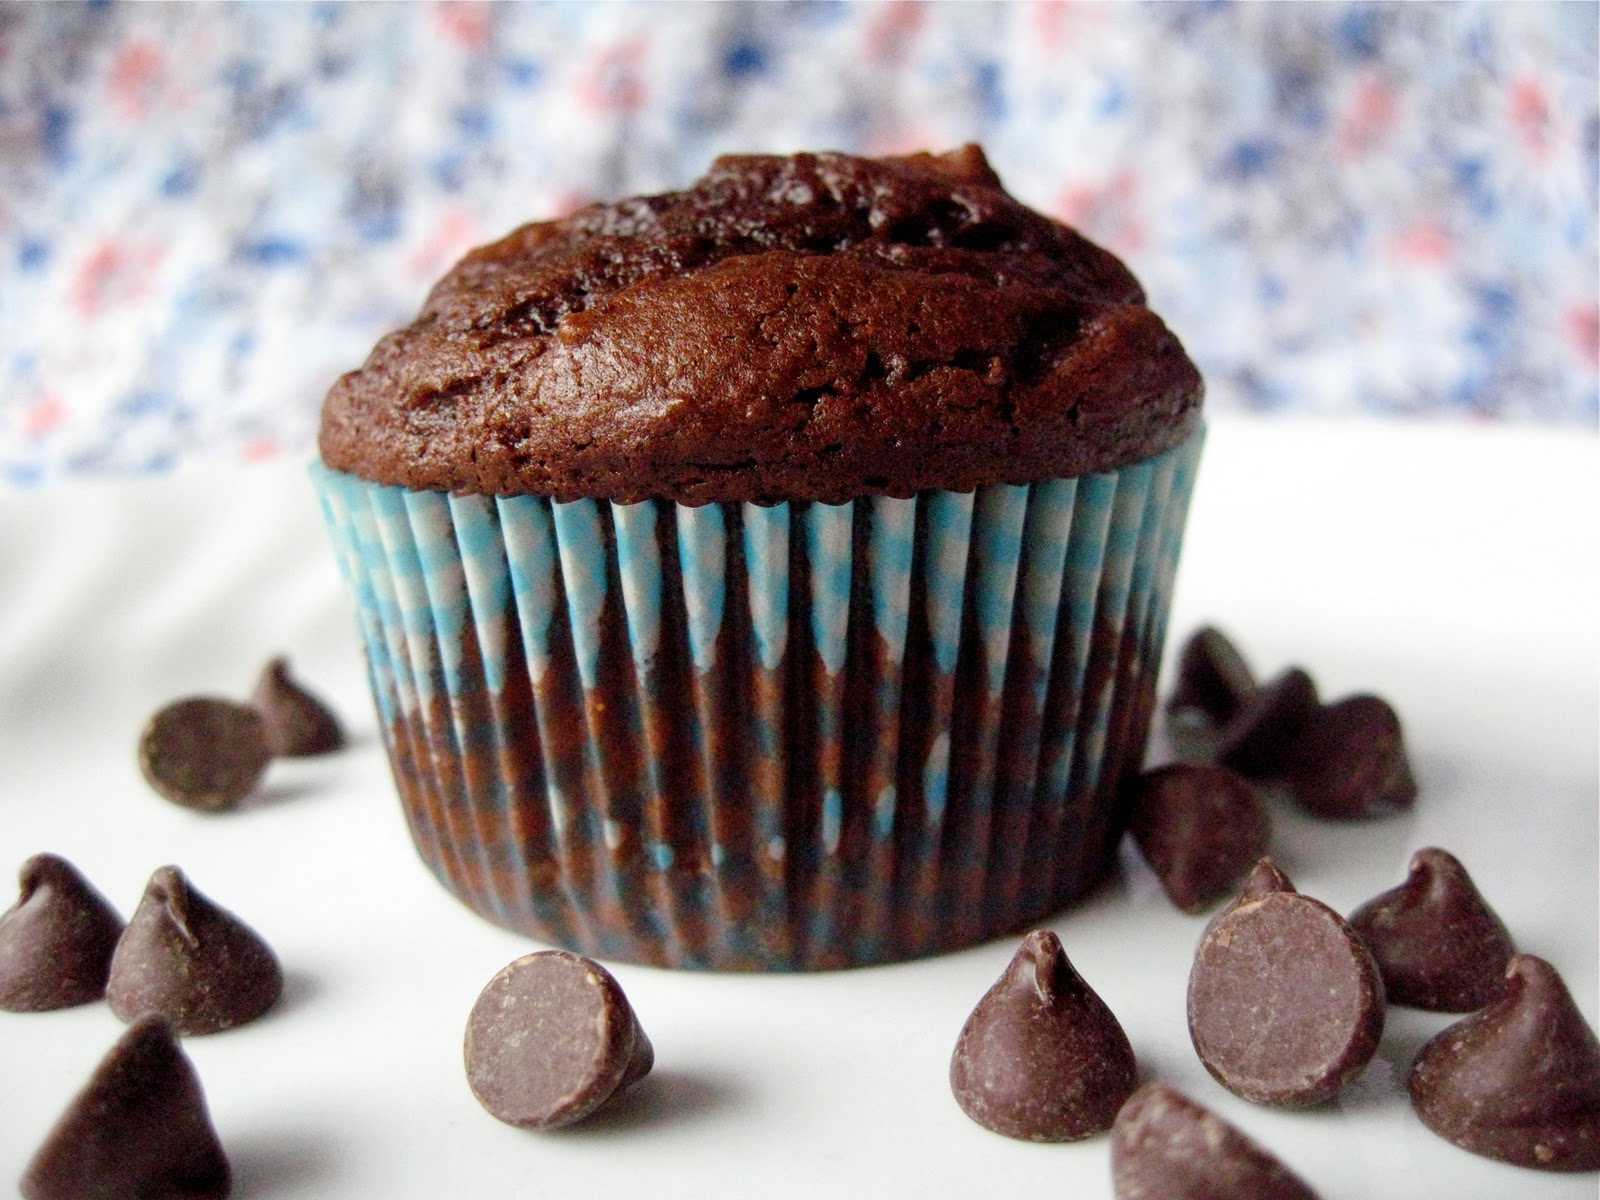 Chocolate Costco Muffins - Your Cup of Cake